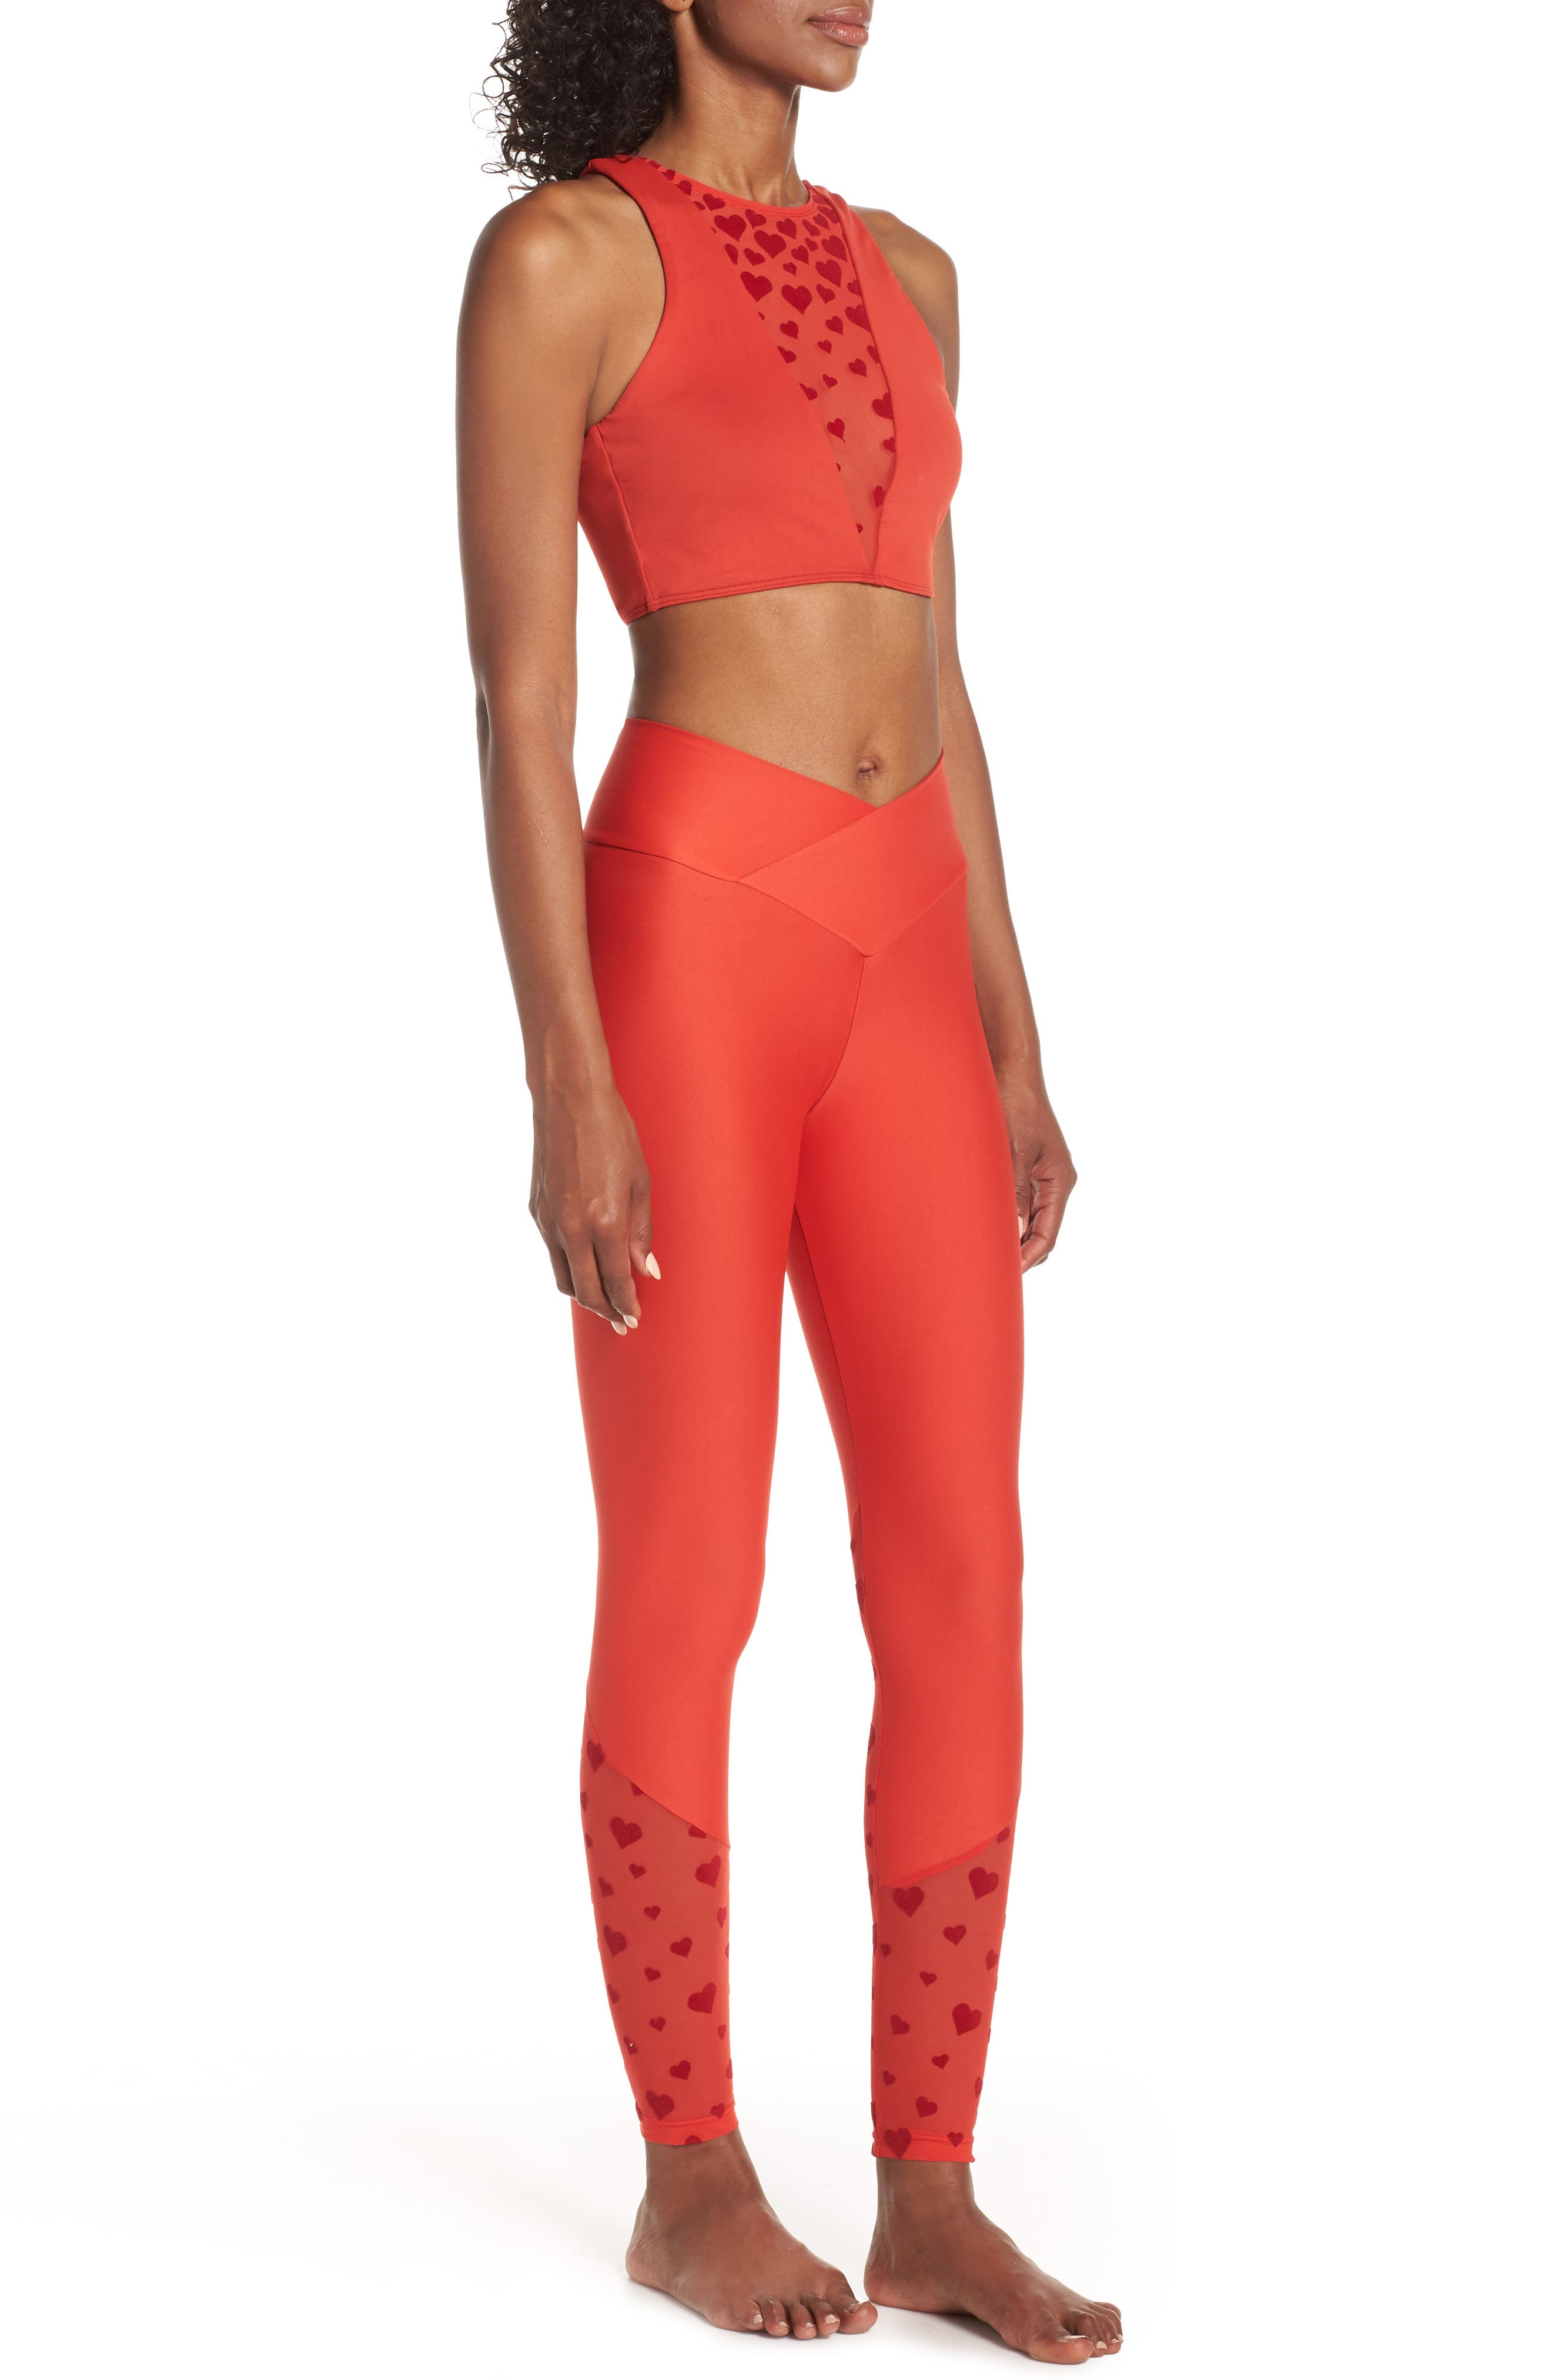 BEACH RIOT,                             Beach Leggings,                             Alternate thumbnail 10, color,                             RED HEART